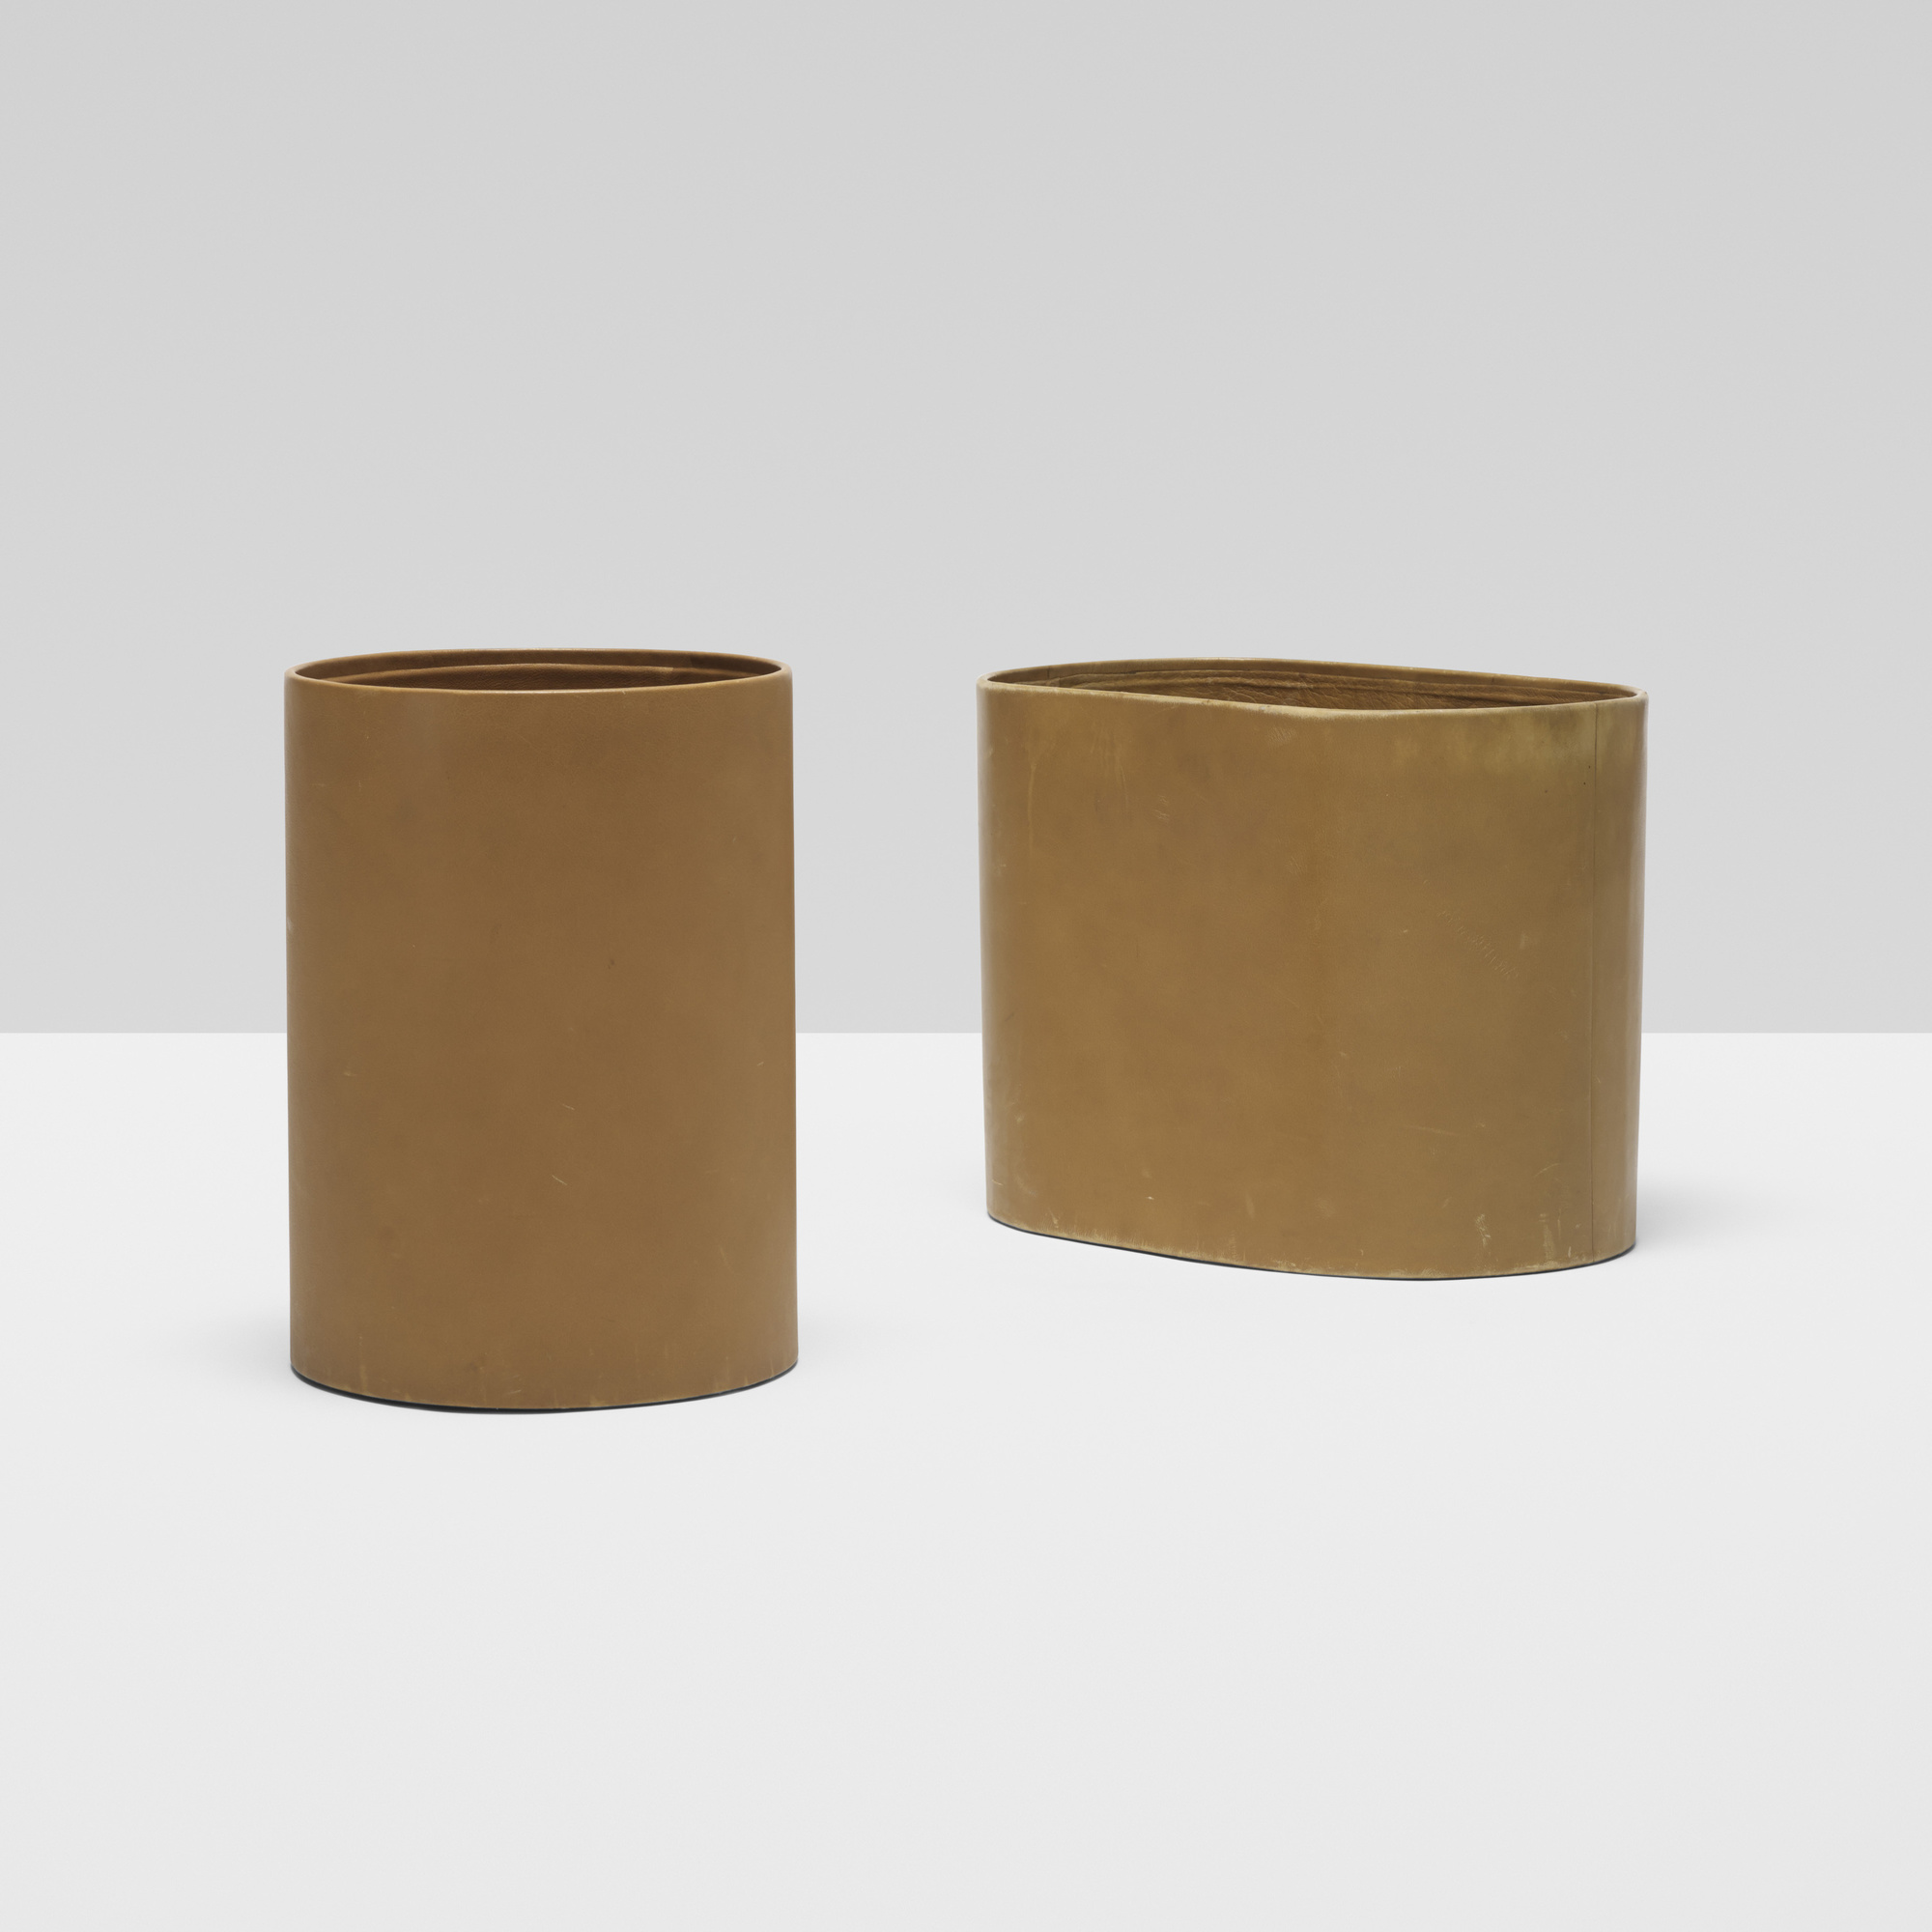 152: Don Powell and Robert Kleinschmidt / pair of wastepaper baskets from 860 Lake Shore Drive, Chicago (1 of 3)